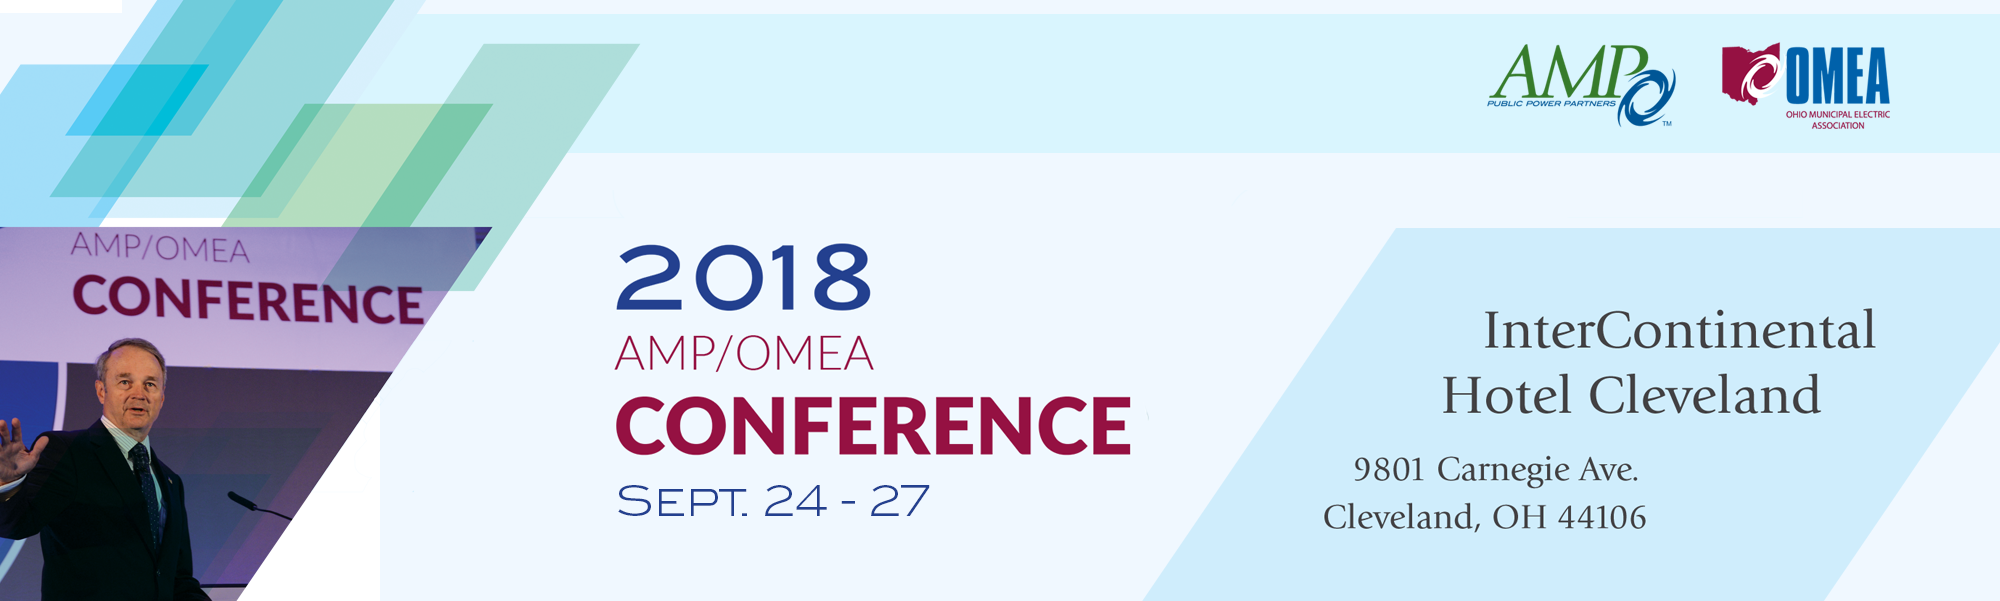 2018 AMP/OMEA Conference